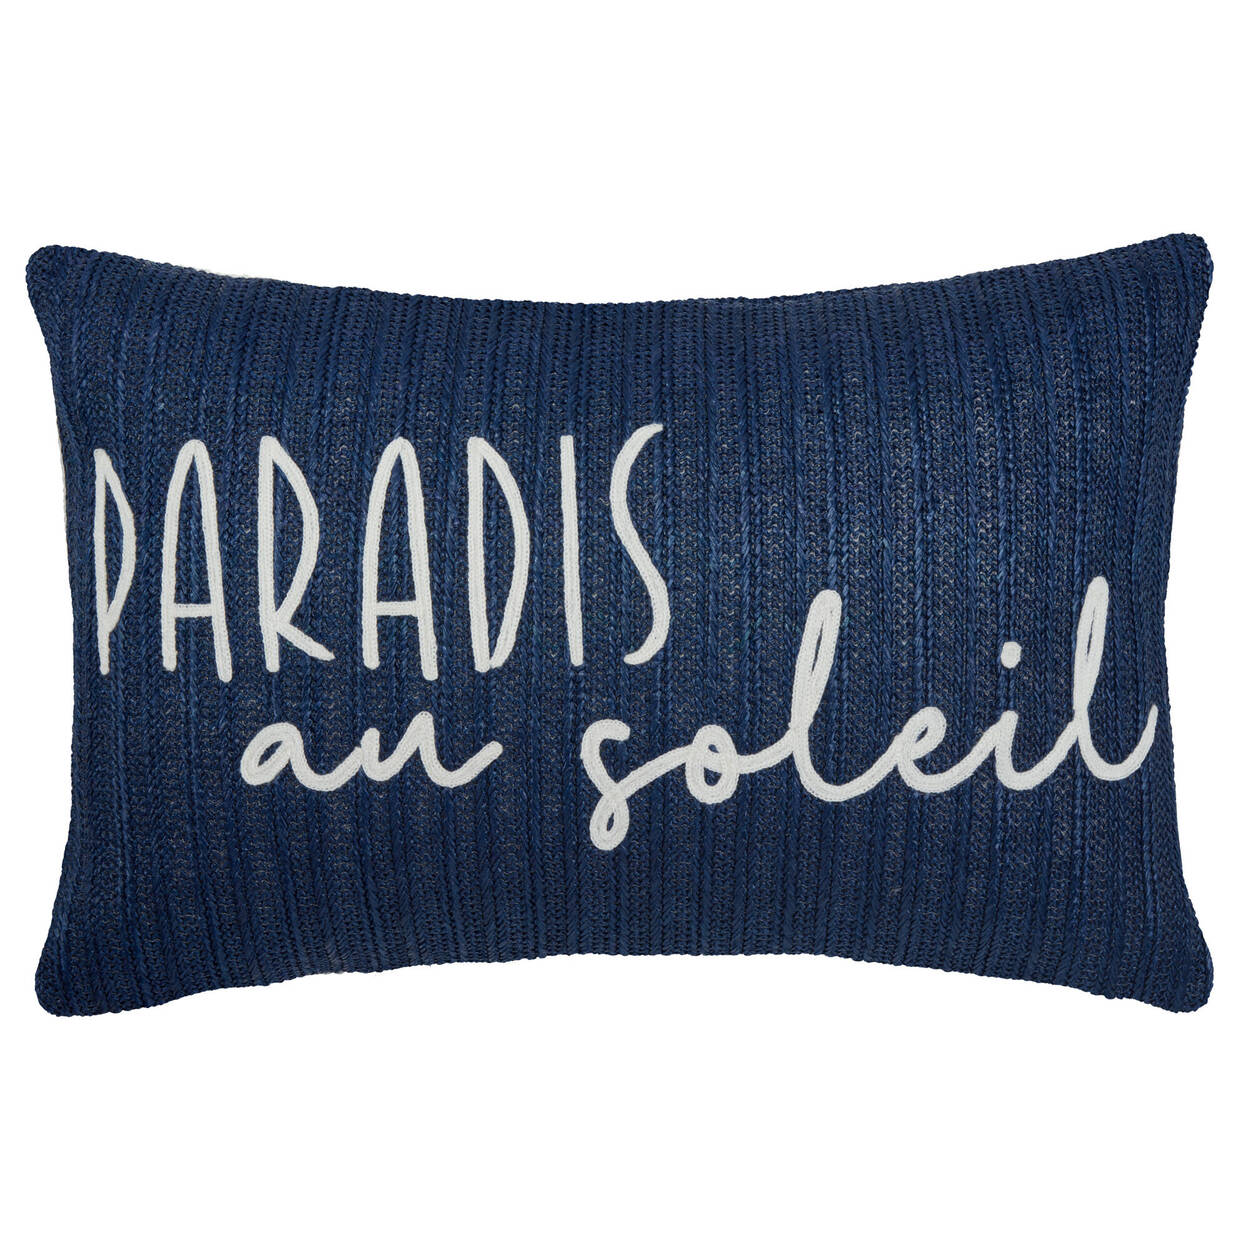 "Paradis Au Soleil Water-Repellent Decorative Lumbar Pillow 13"" X 20"""